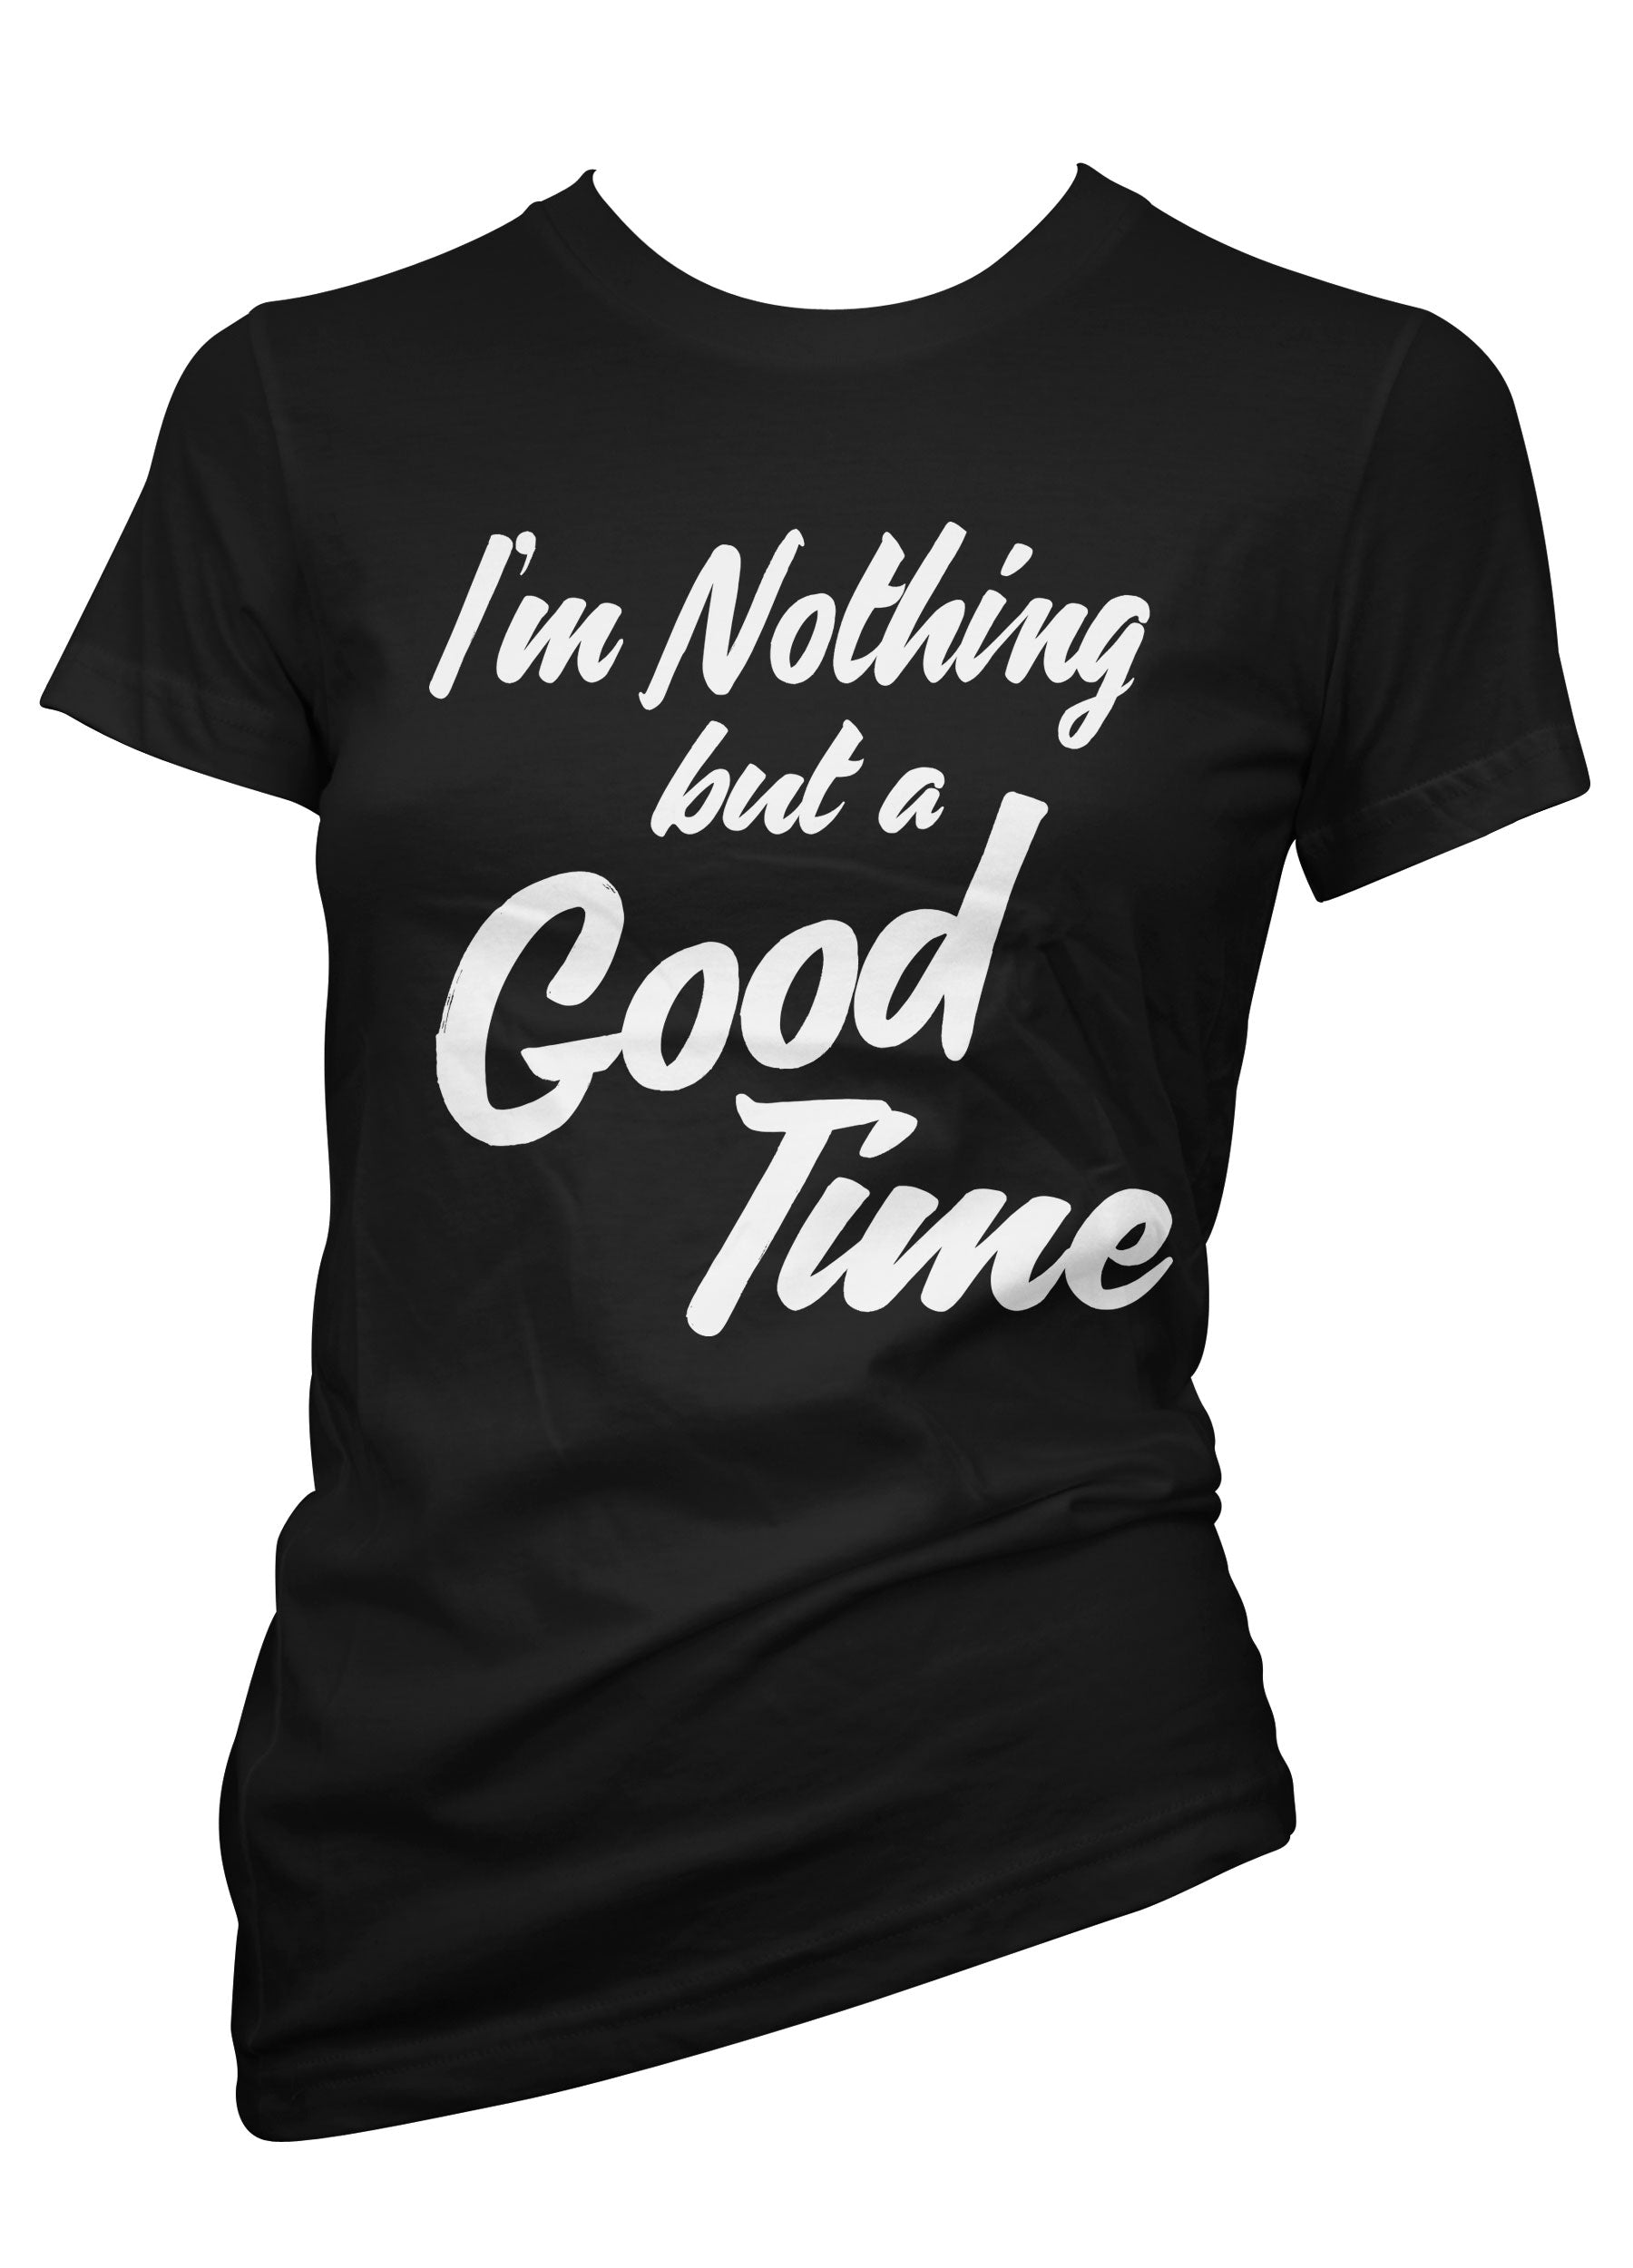 I'm Nothing but a good time - Seduce And destroy - Pinky Star